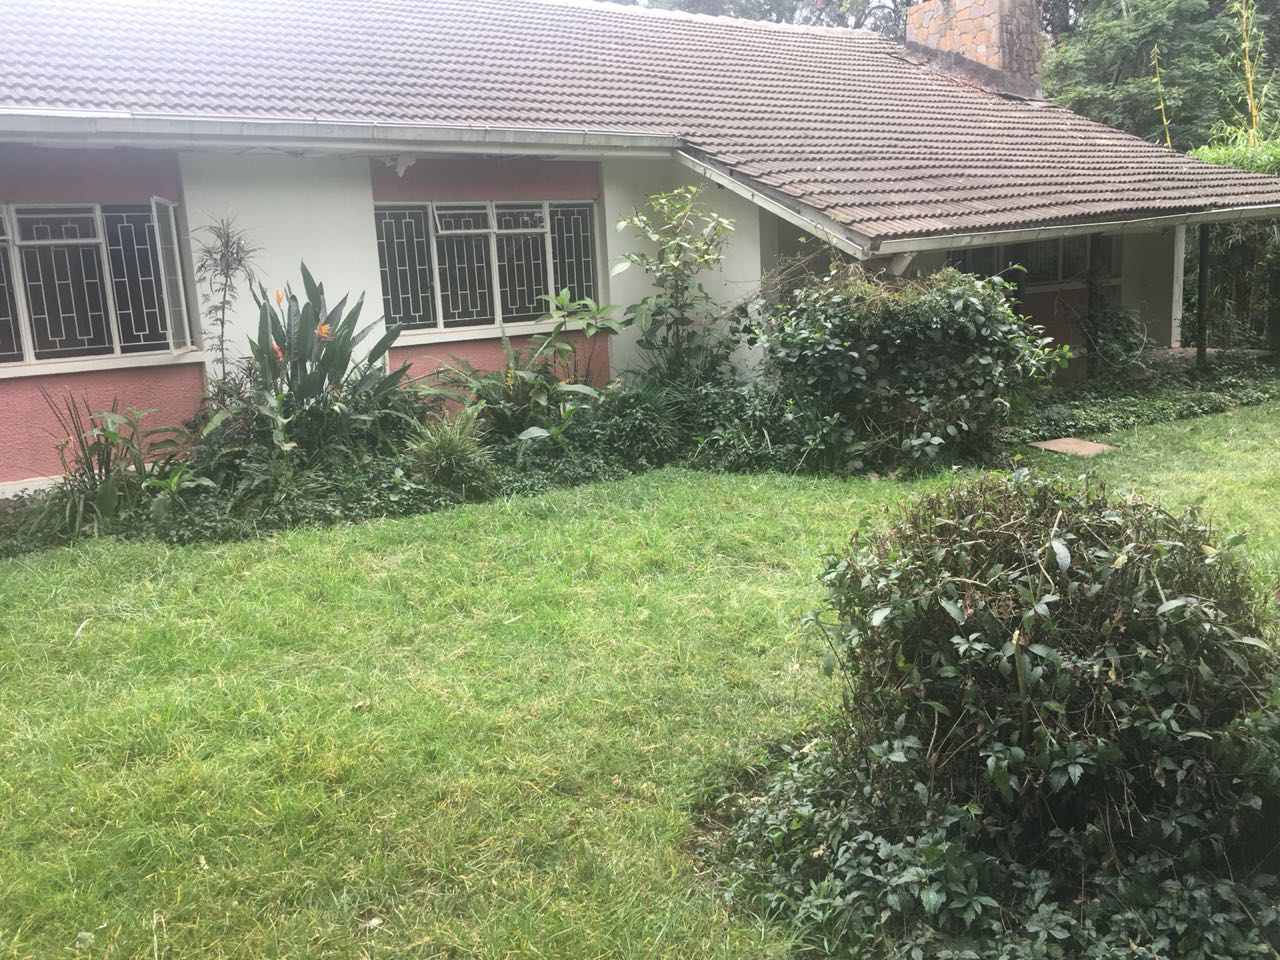 3 Bedroom Bungalow on 1/4 Of An Acre.